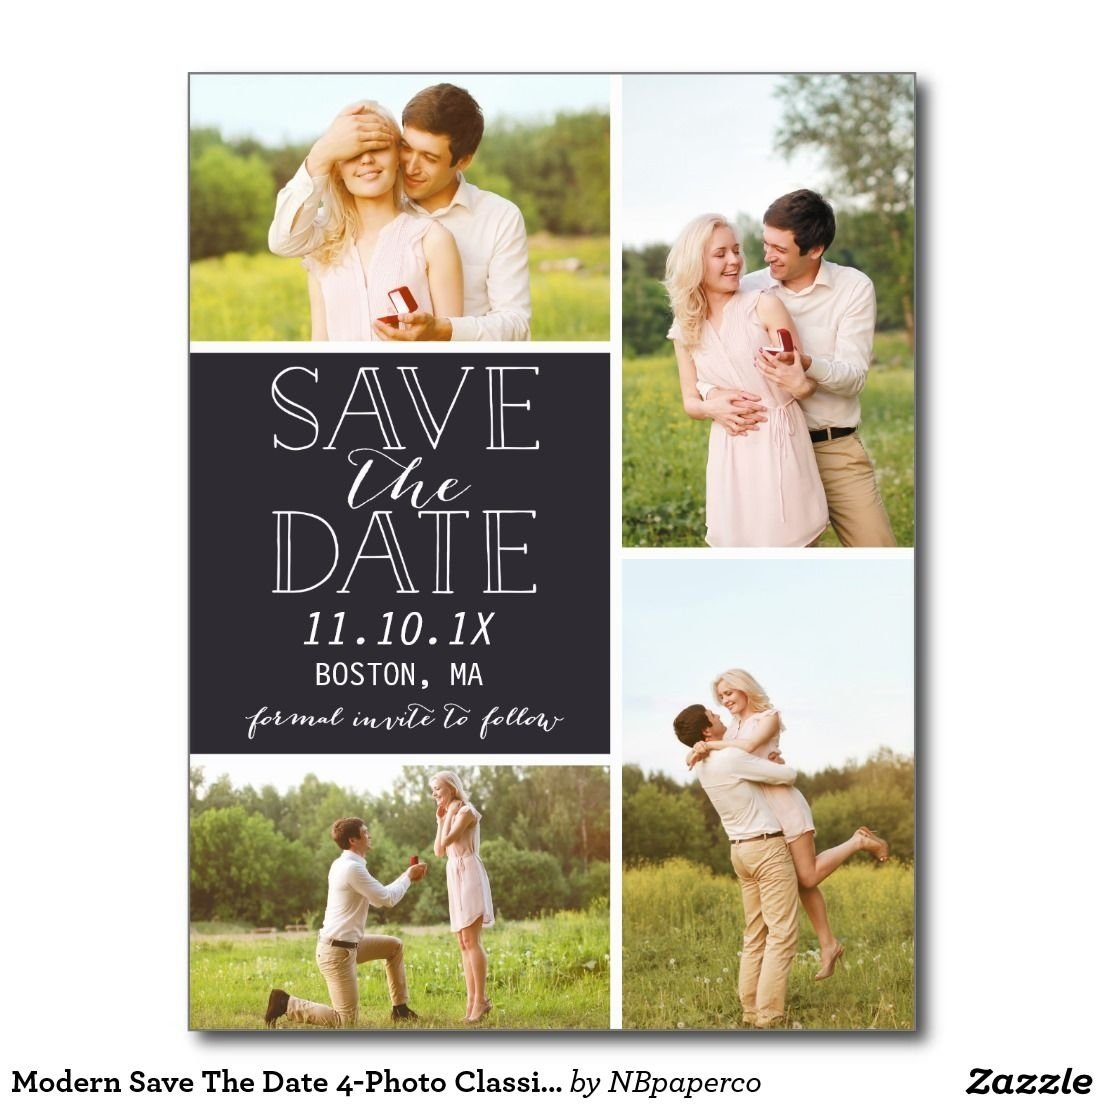 10 Elegant Save The Date Ideas Pinterest modern save the date 4 photo classic collage postcard wedding 2020